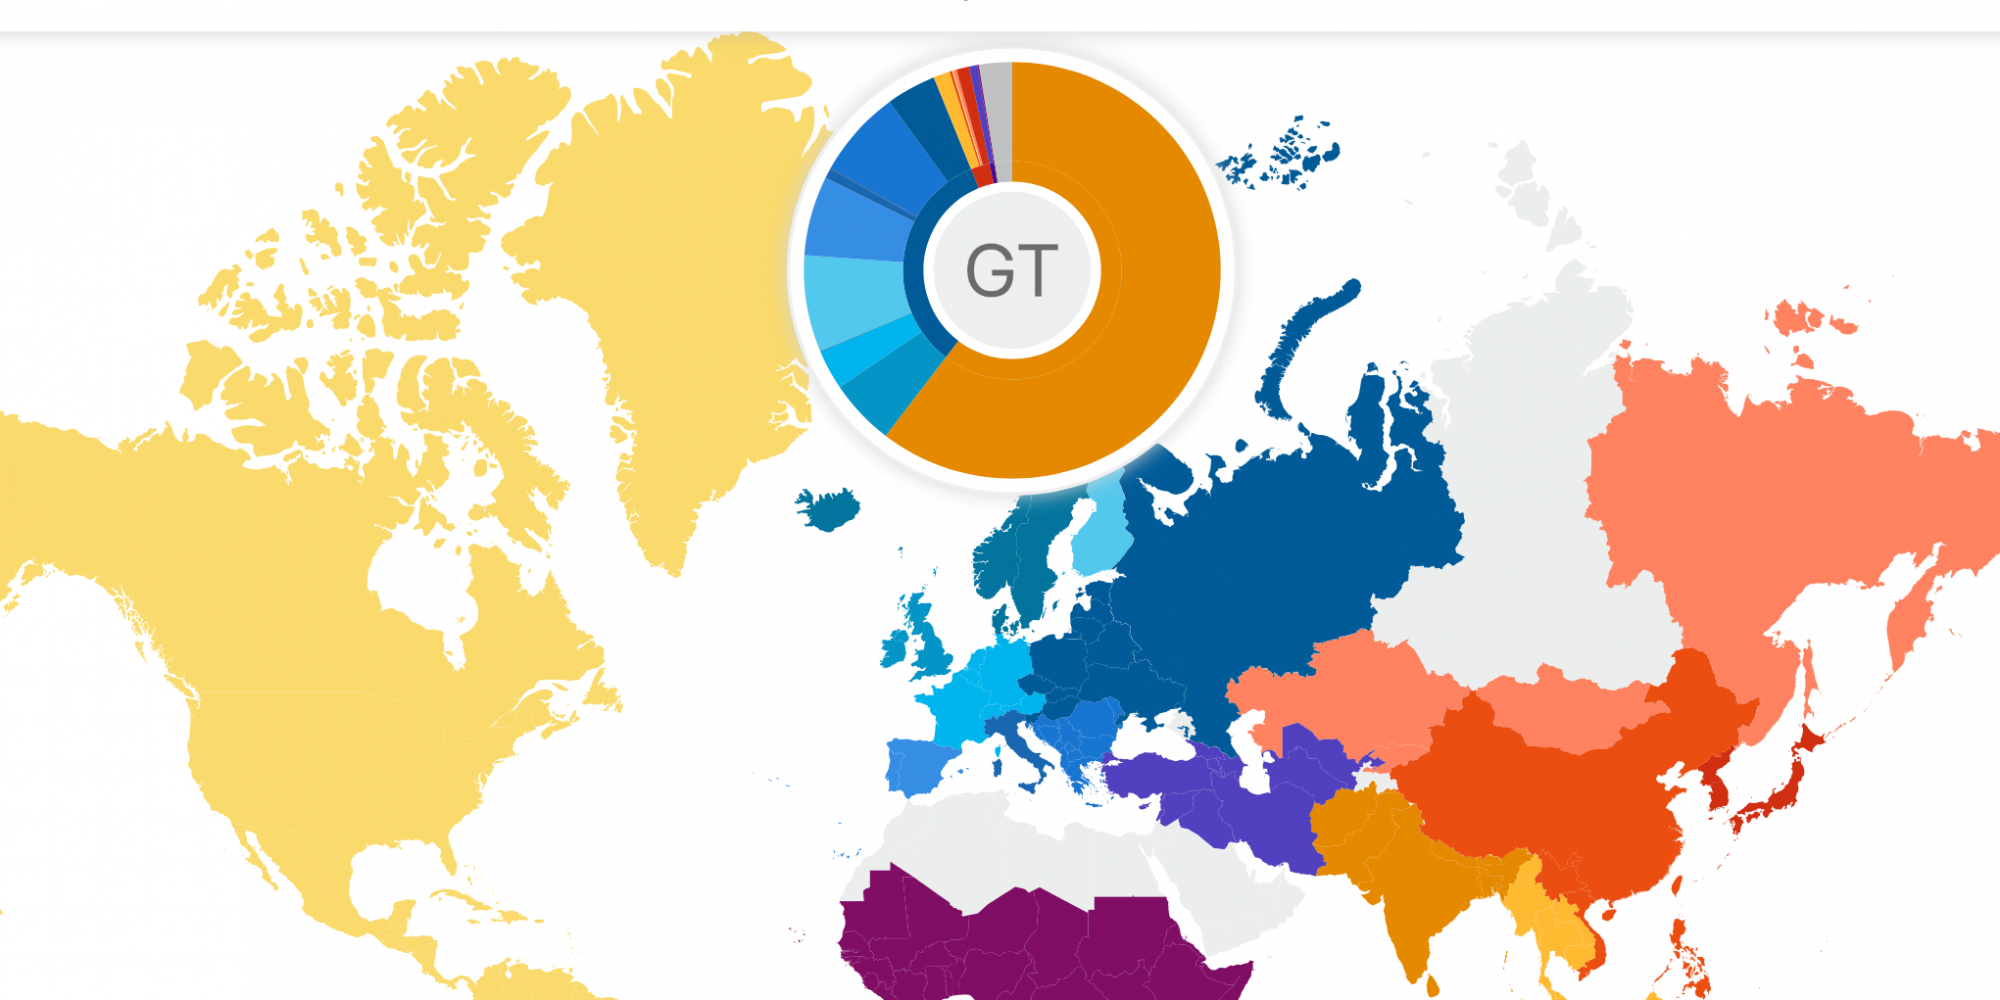 Image: genetic map from 23andme.com